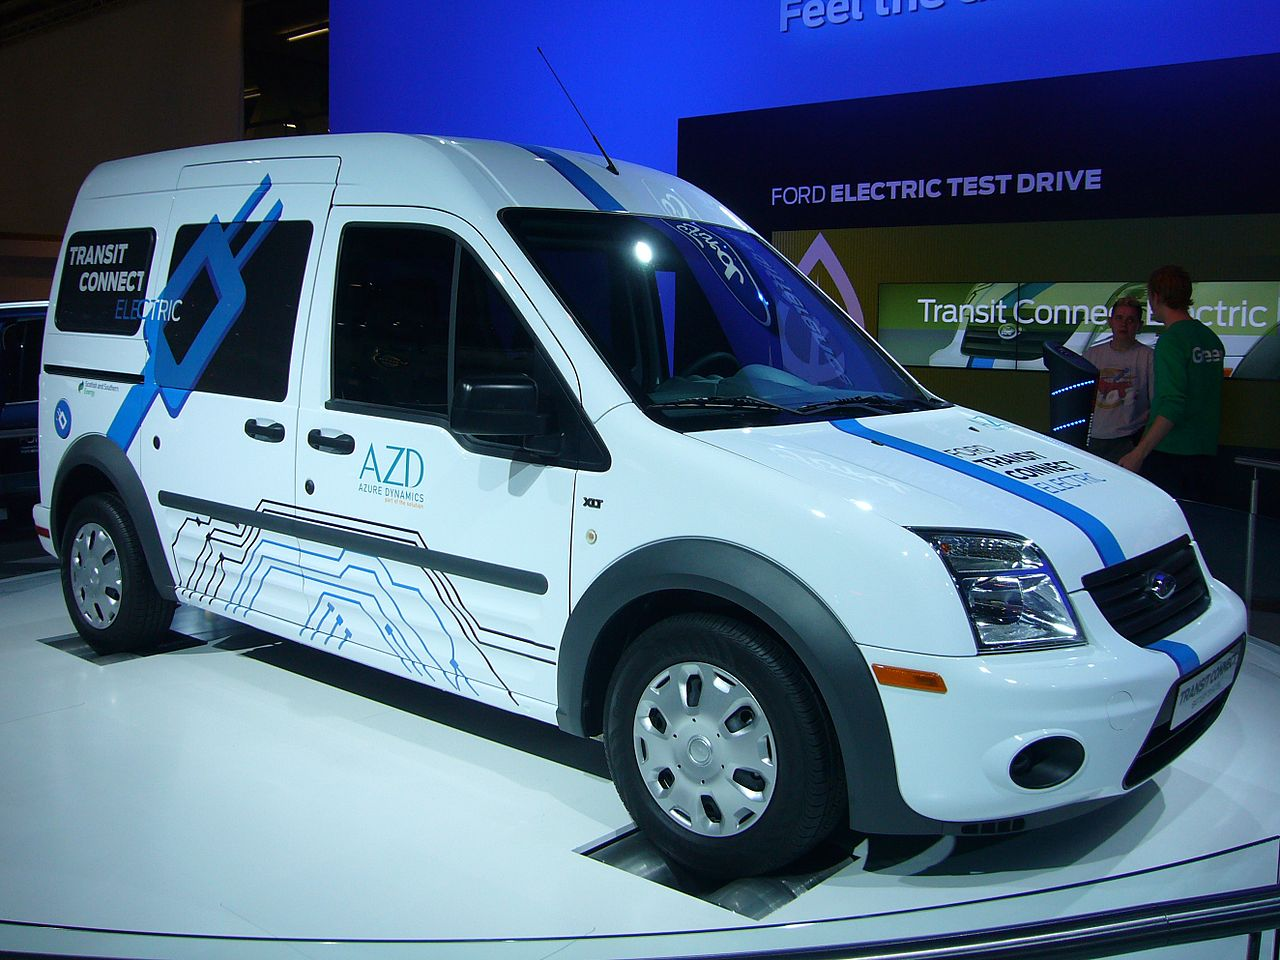 2019 Ford Transit Connect Electric photo - 6